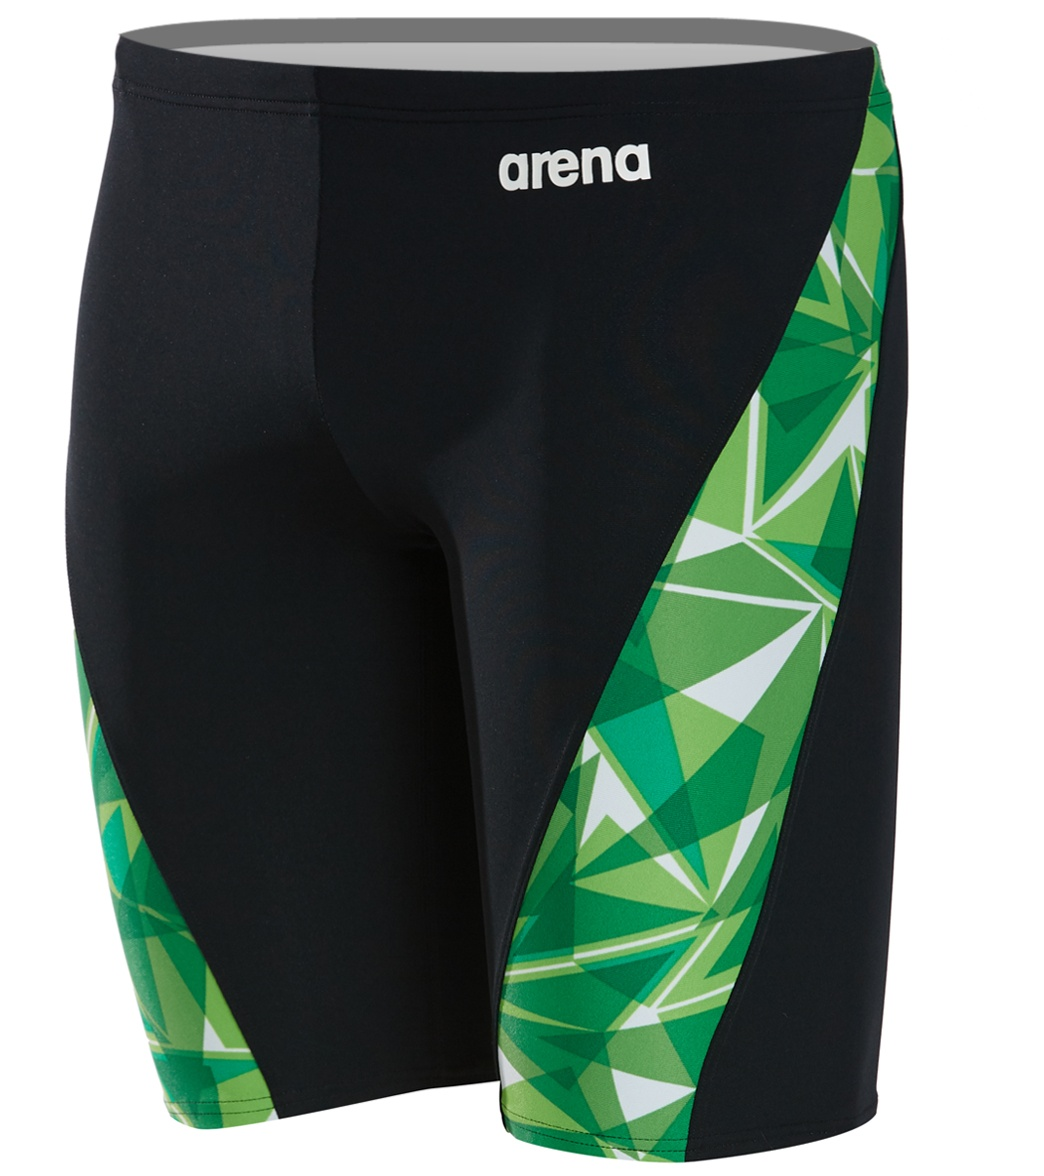 94a53f86bb2 Arena Men s Shattered Glass MaxLife Jammer Swimsuit at SwimOutlet.com -  Free Shipping